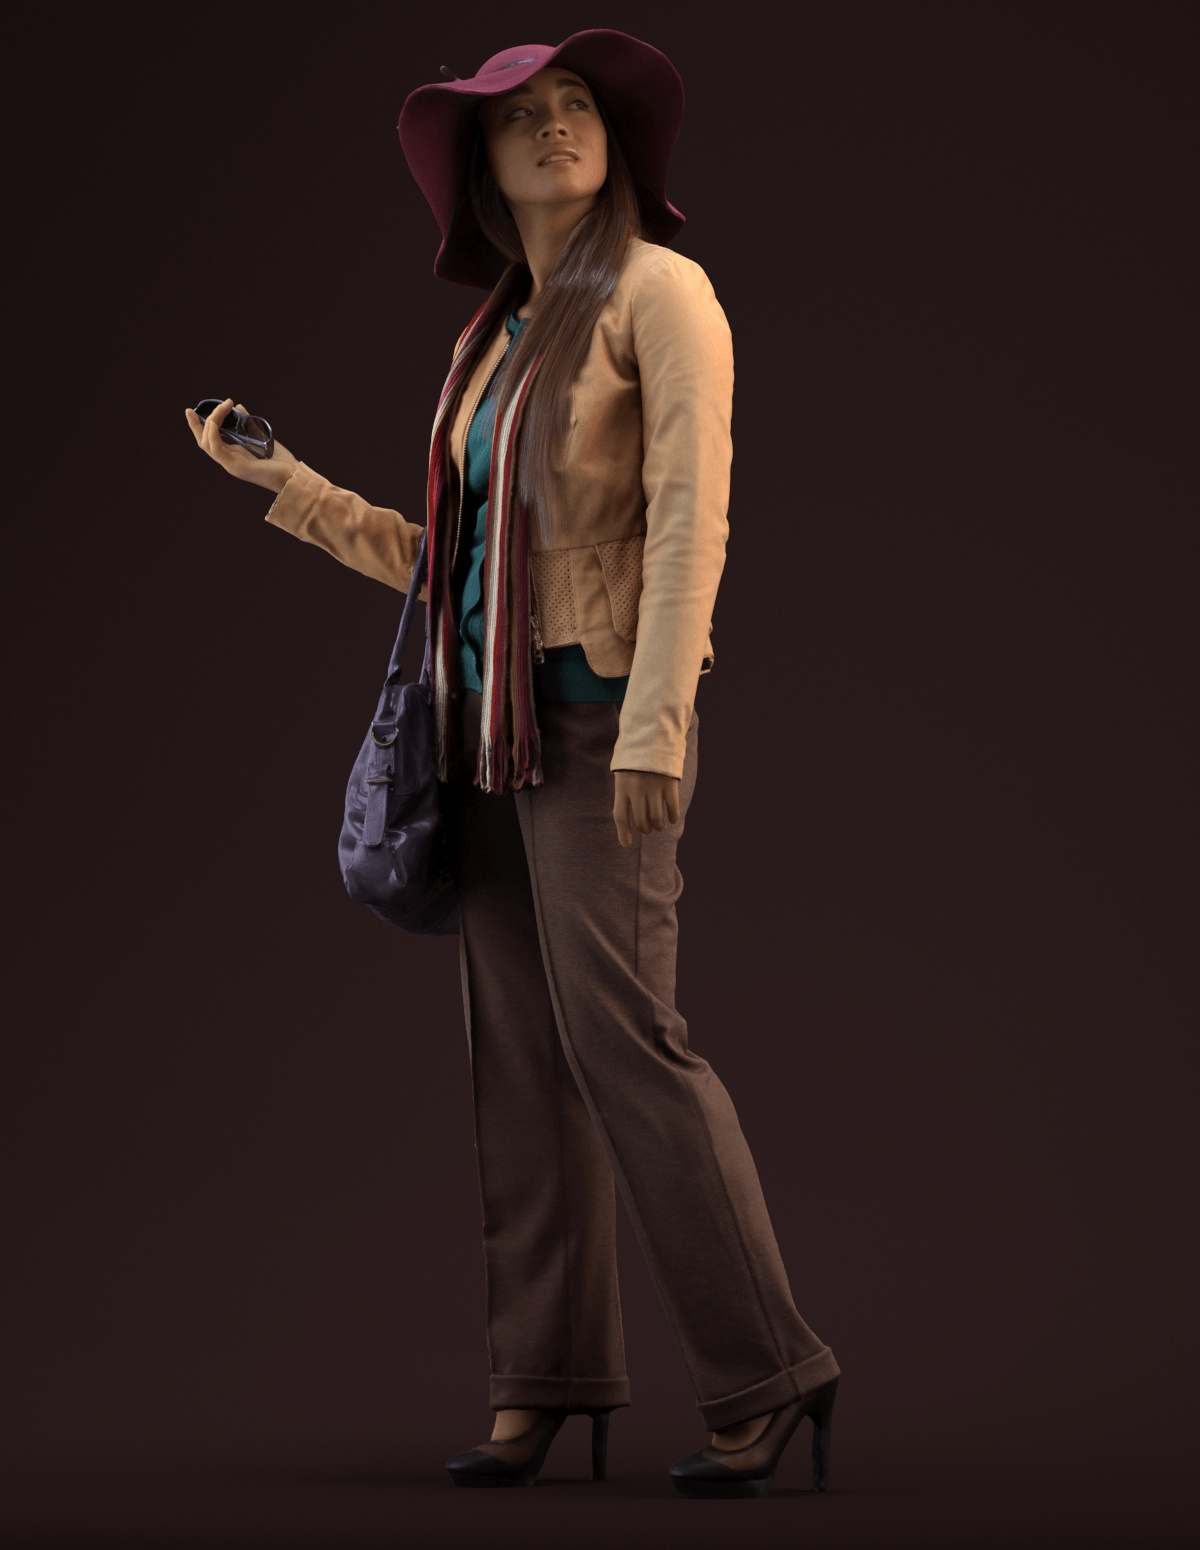 3D model Esmee standing wearing hat and jacket